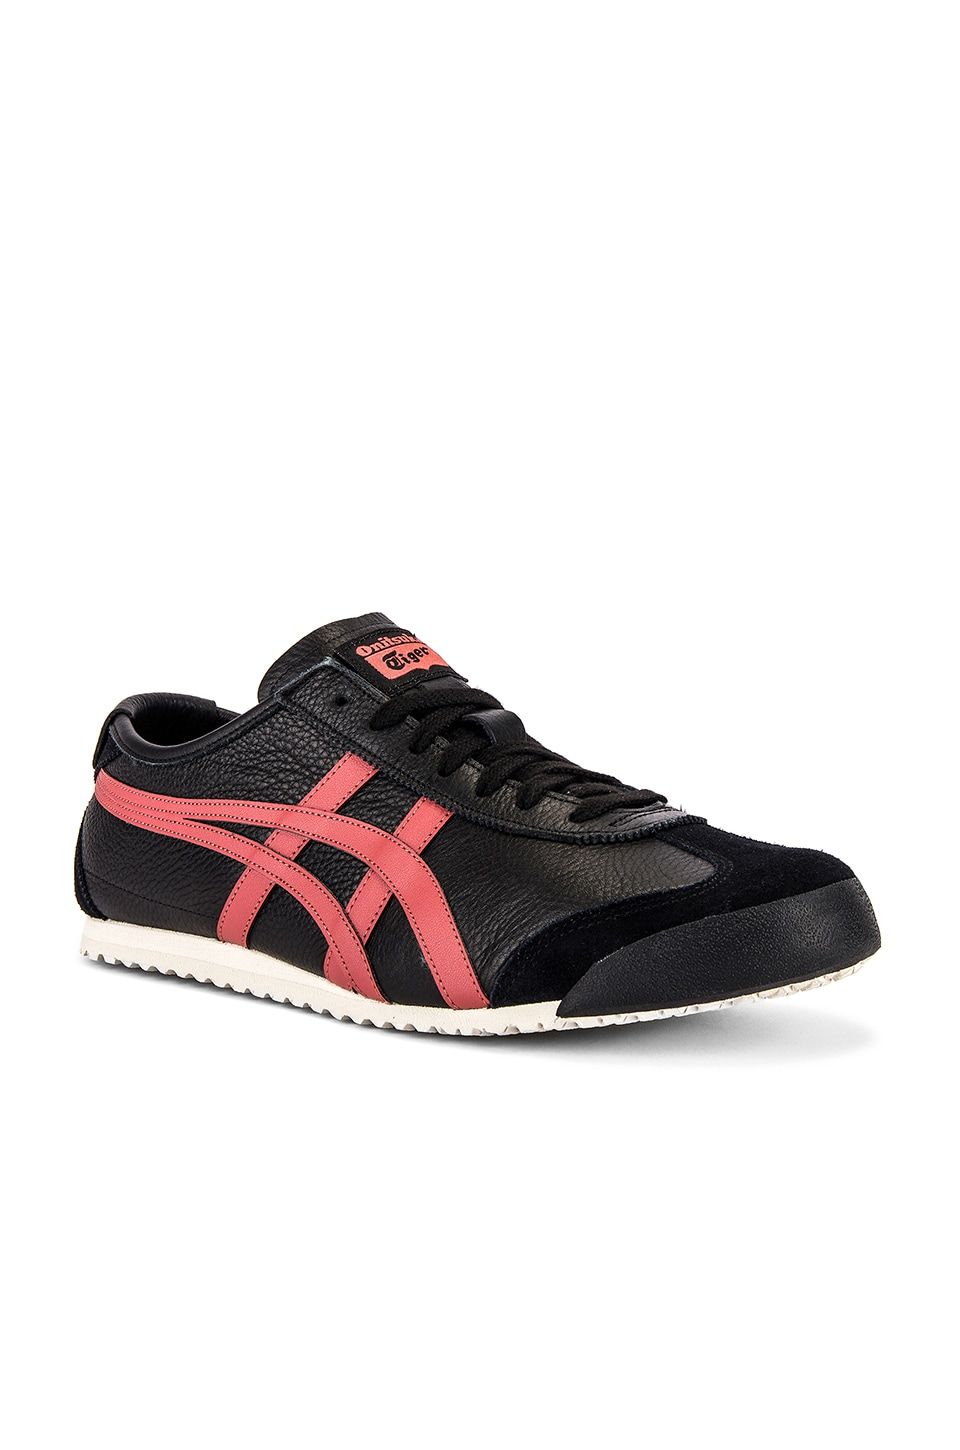 Onitsuka Tiger Mexico 66 en Black & Burnt Red